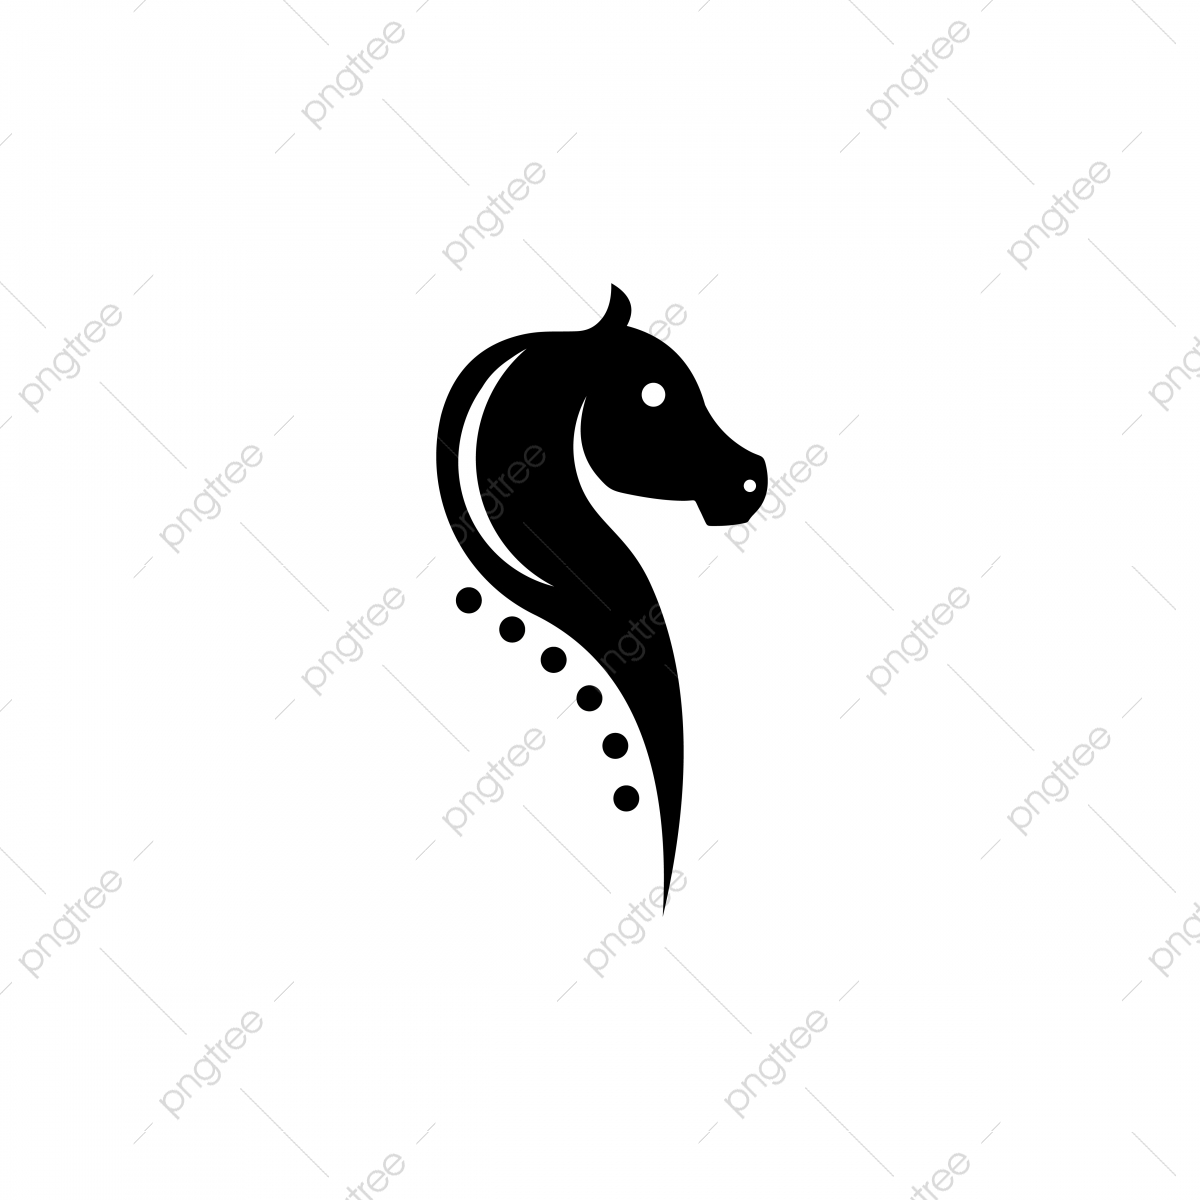 Horse Silhouette Png Images Vector And Psd Files Free Download On Pngtree